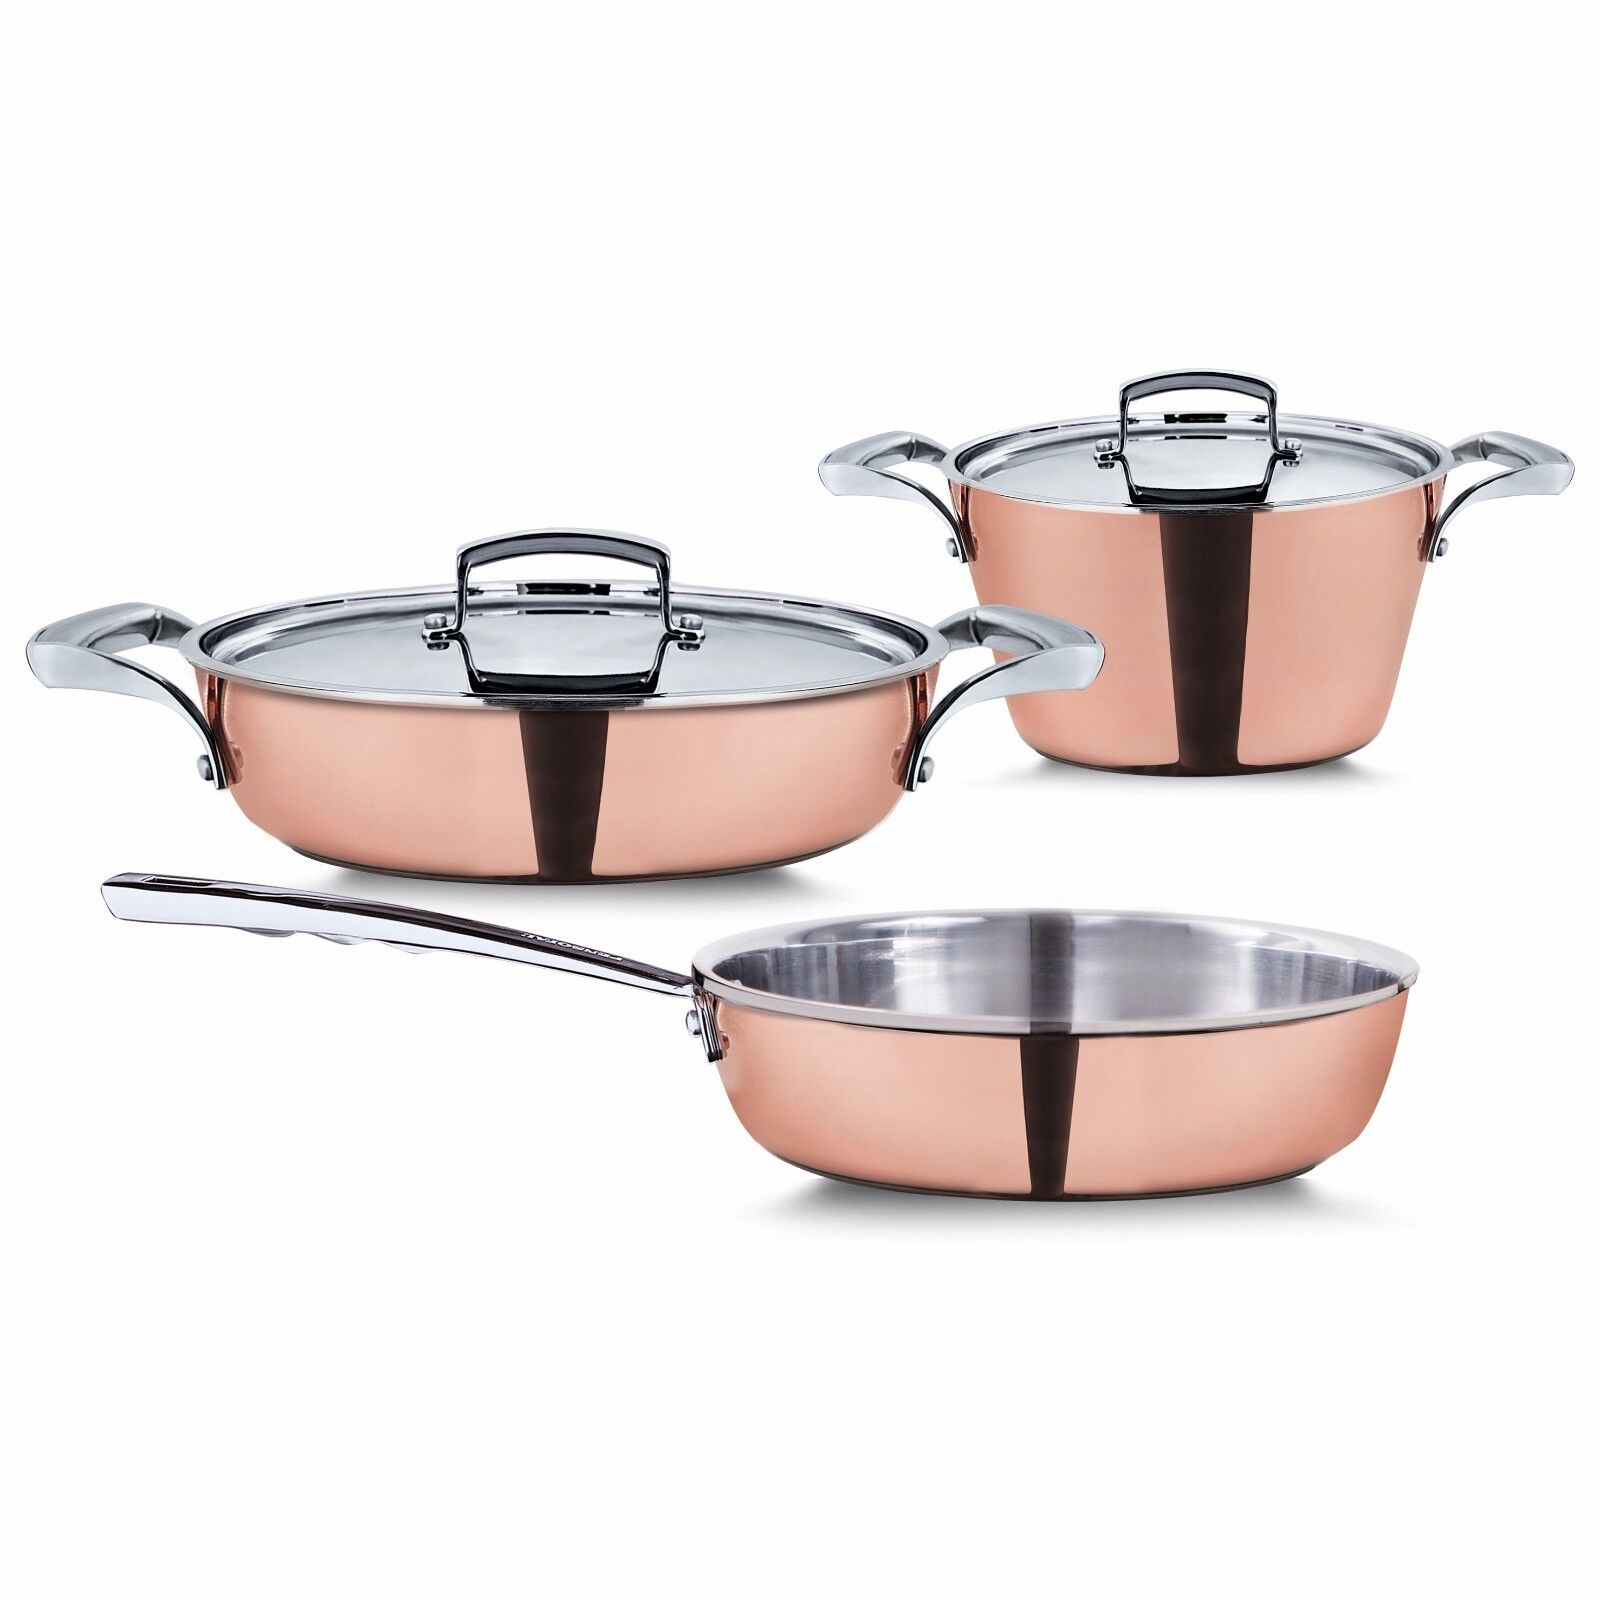 New. Pensofal Reserve Cookware Set, 5 Piece, Copper . made in